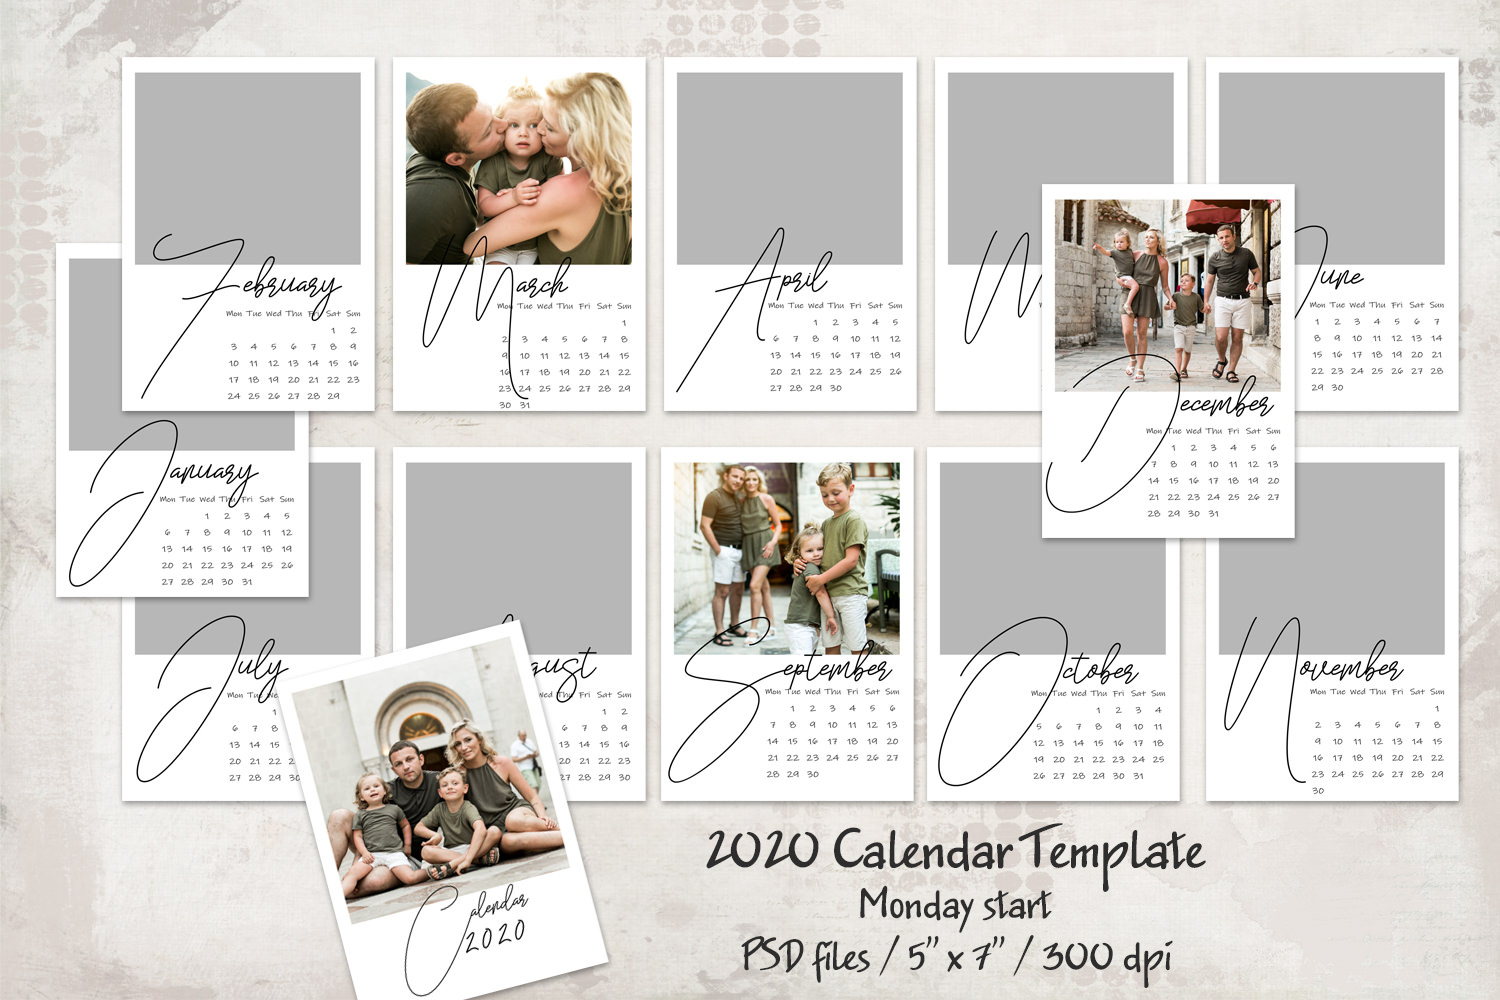 2020 Calendar Template  Monday Start  5X7 regarding 2020 Calendar Psd File